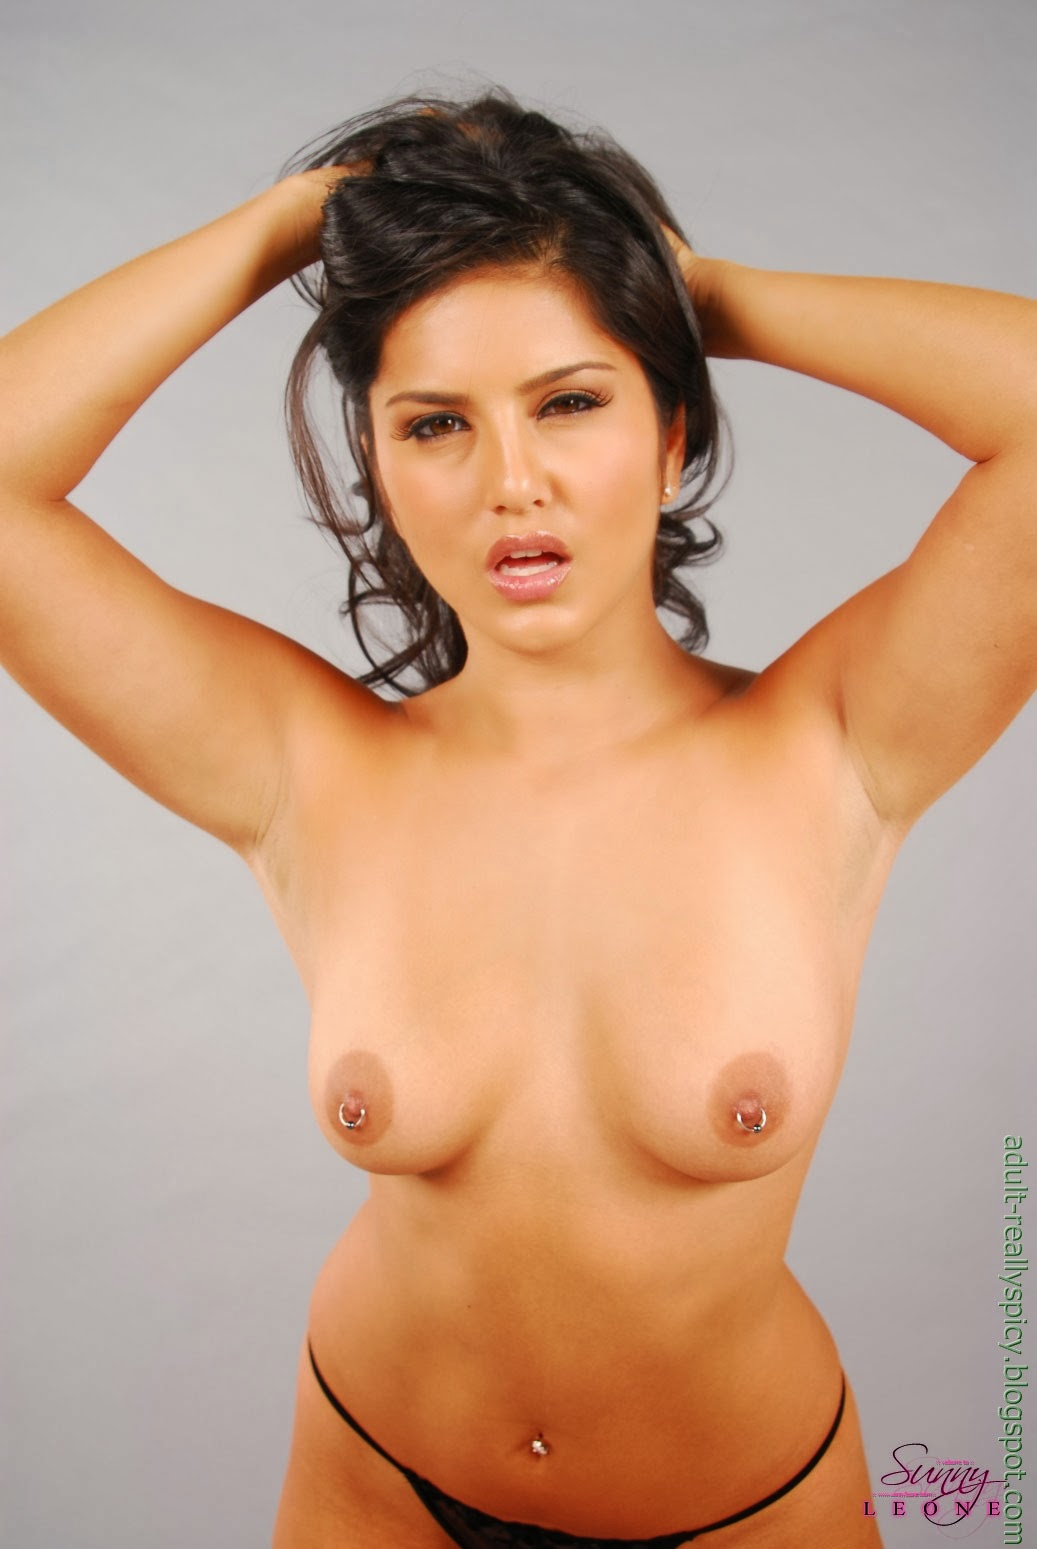 Spicy Sex Expression Of Sunny Leone Nude Photos  Hd Hot -3563